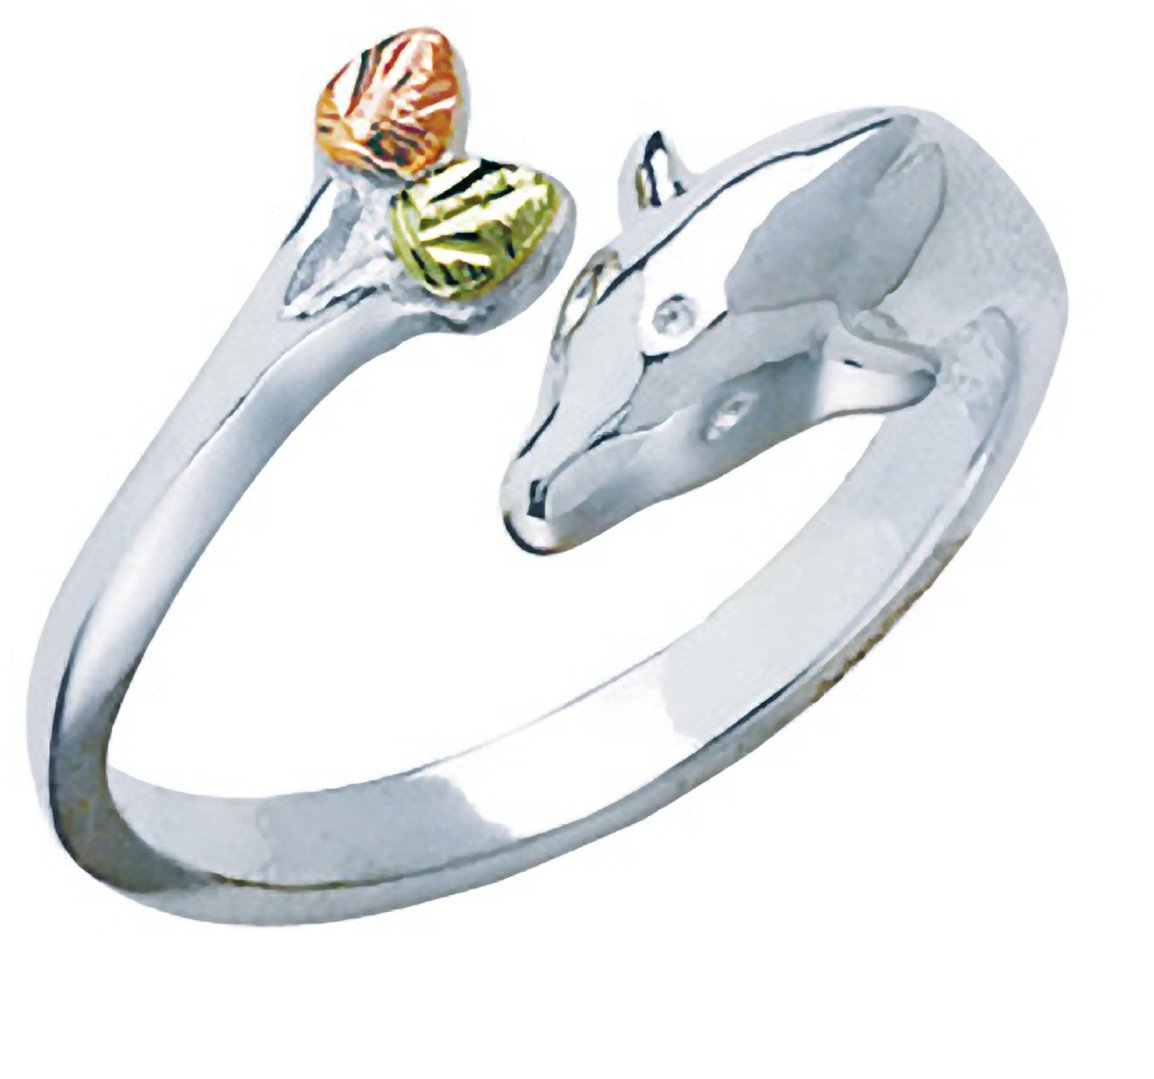 Black Hills Silver Toe Ring with Dolphin